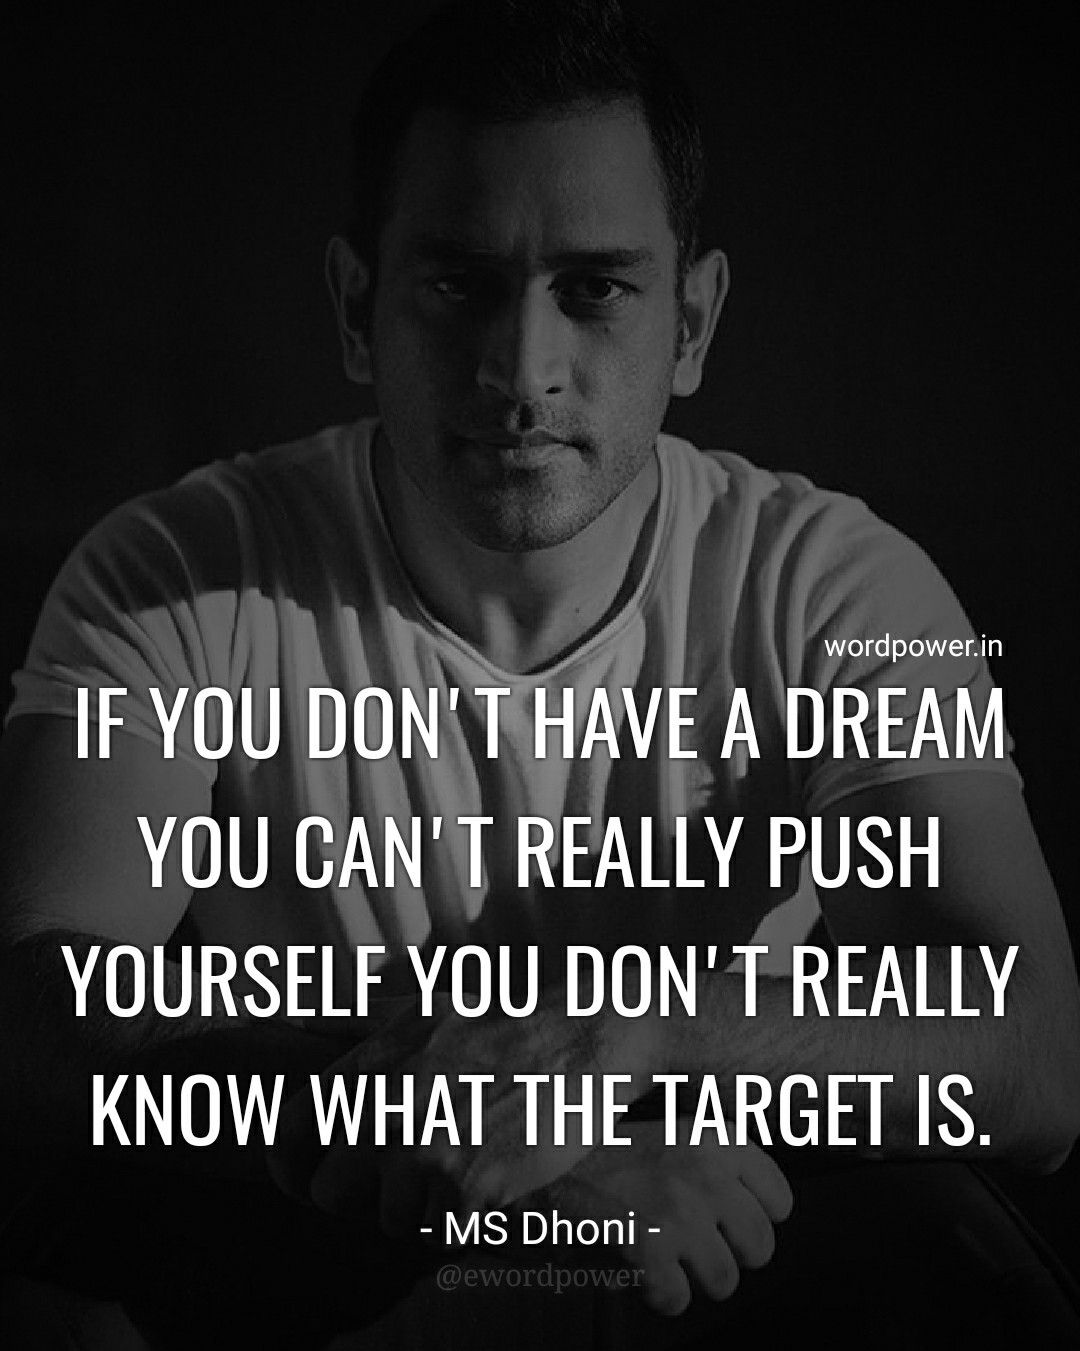 If you don't have a dream you can't really push yourself